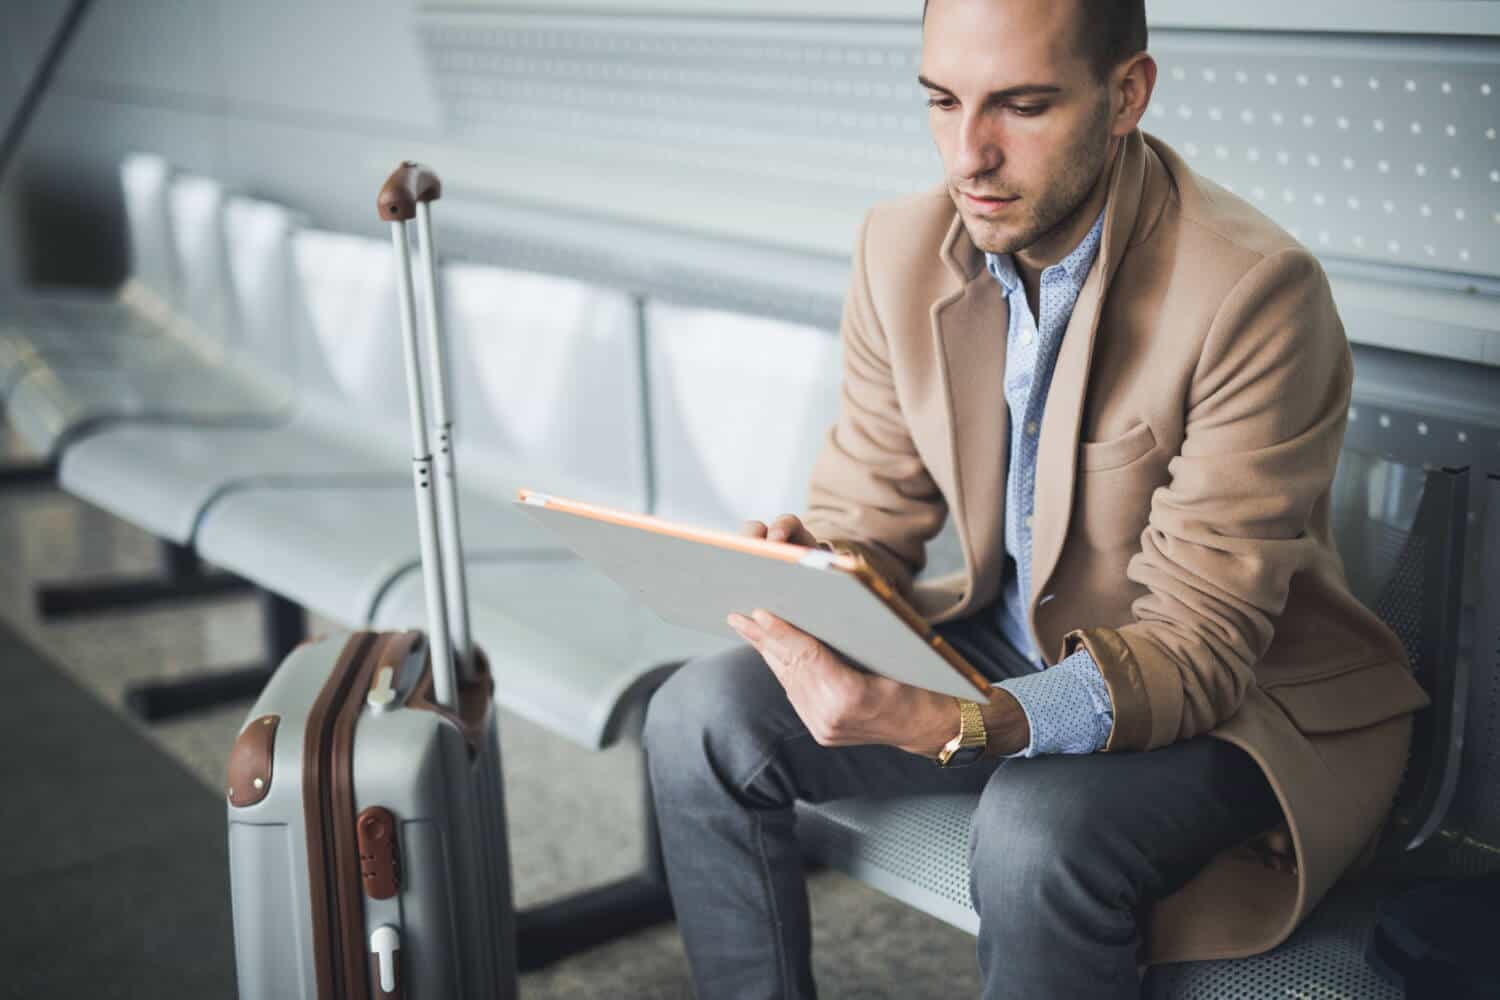 Overseas workers like this man waiting at the airport see positives and negatives to the job